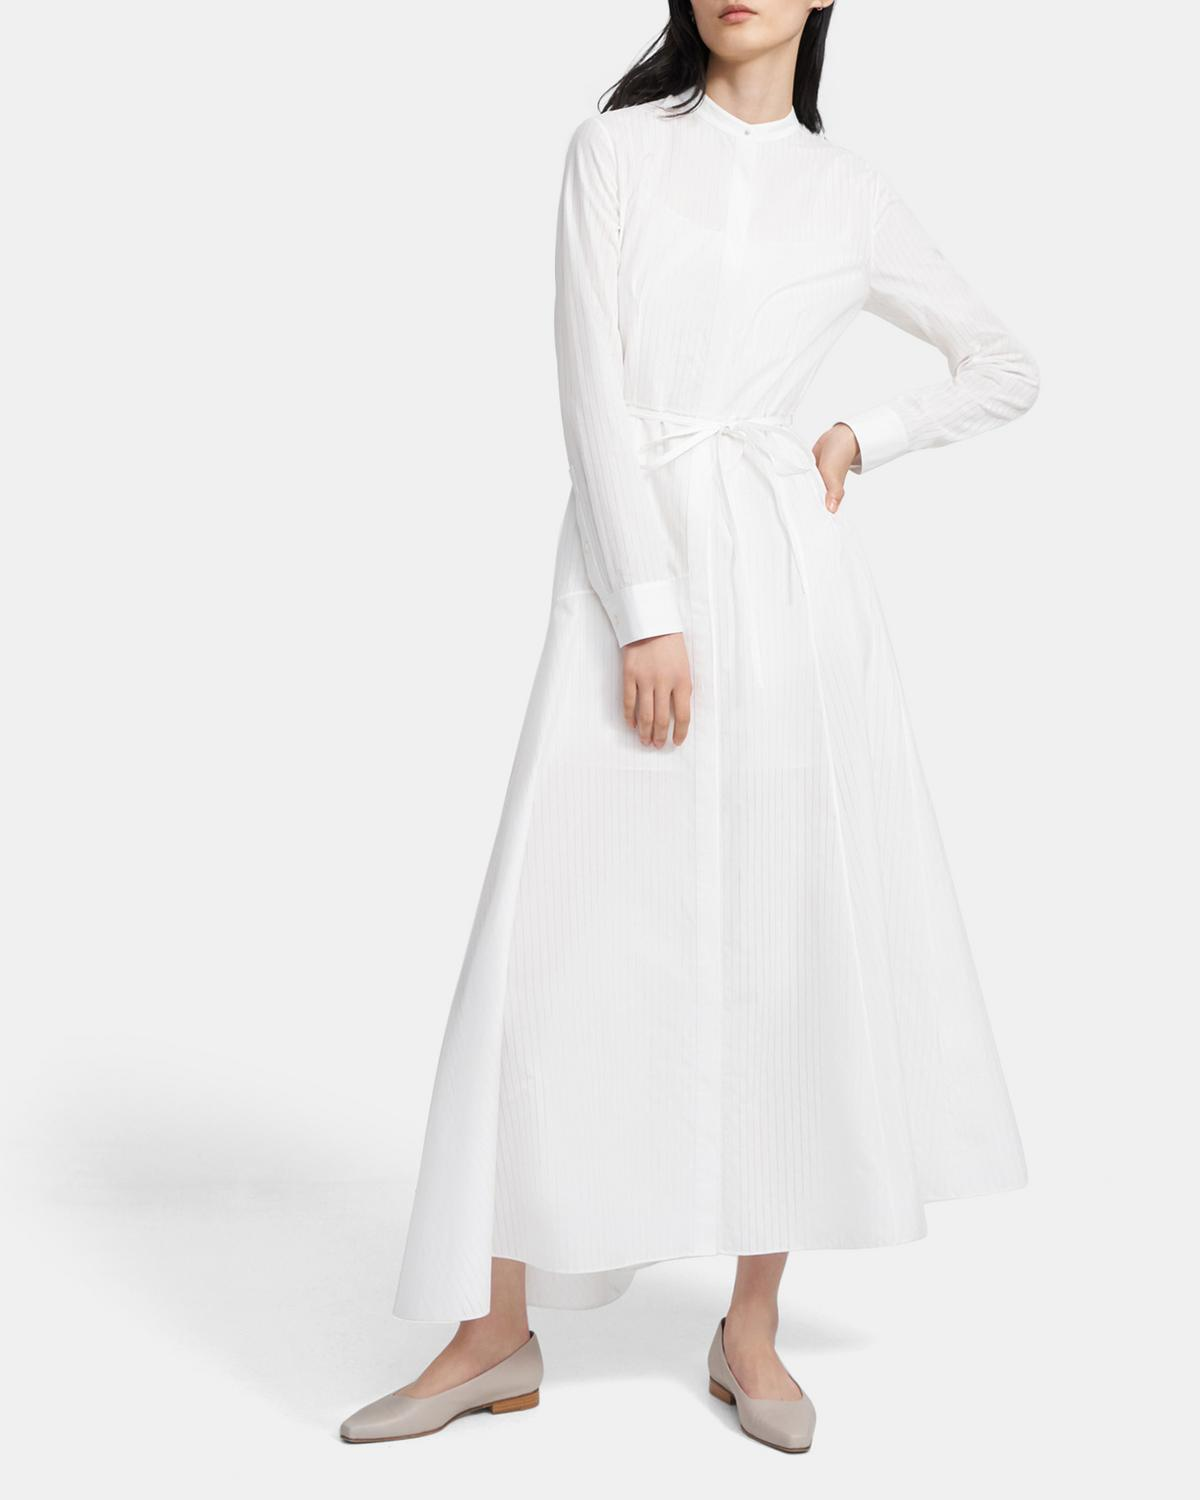 Asymmetric Shirtdress in Sheer Pinstripe Cotton